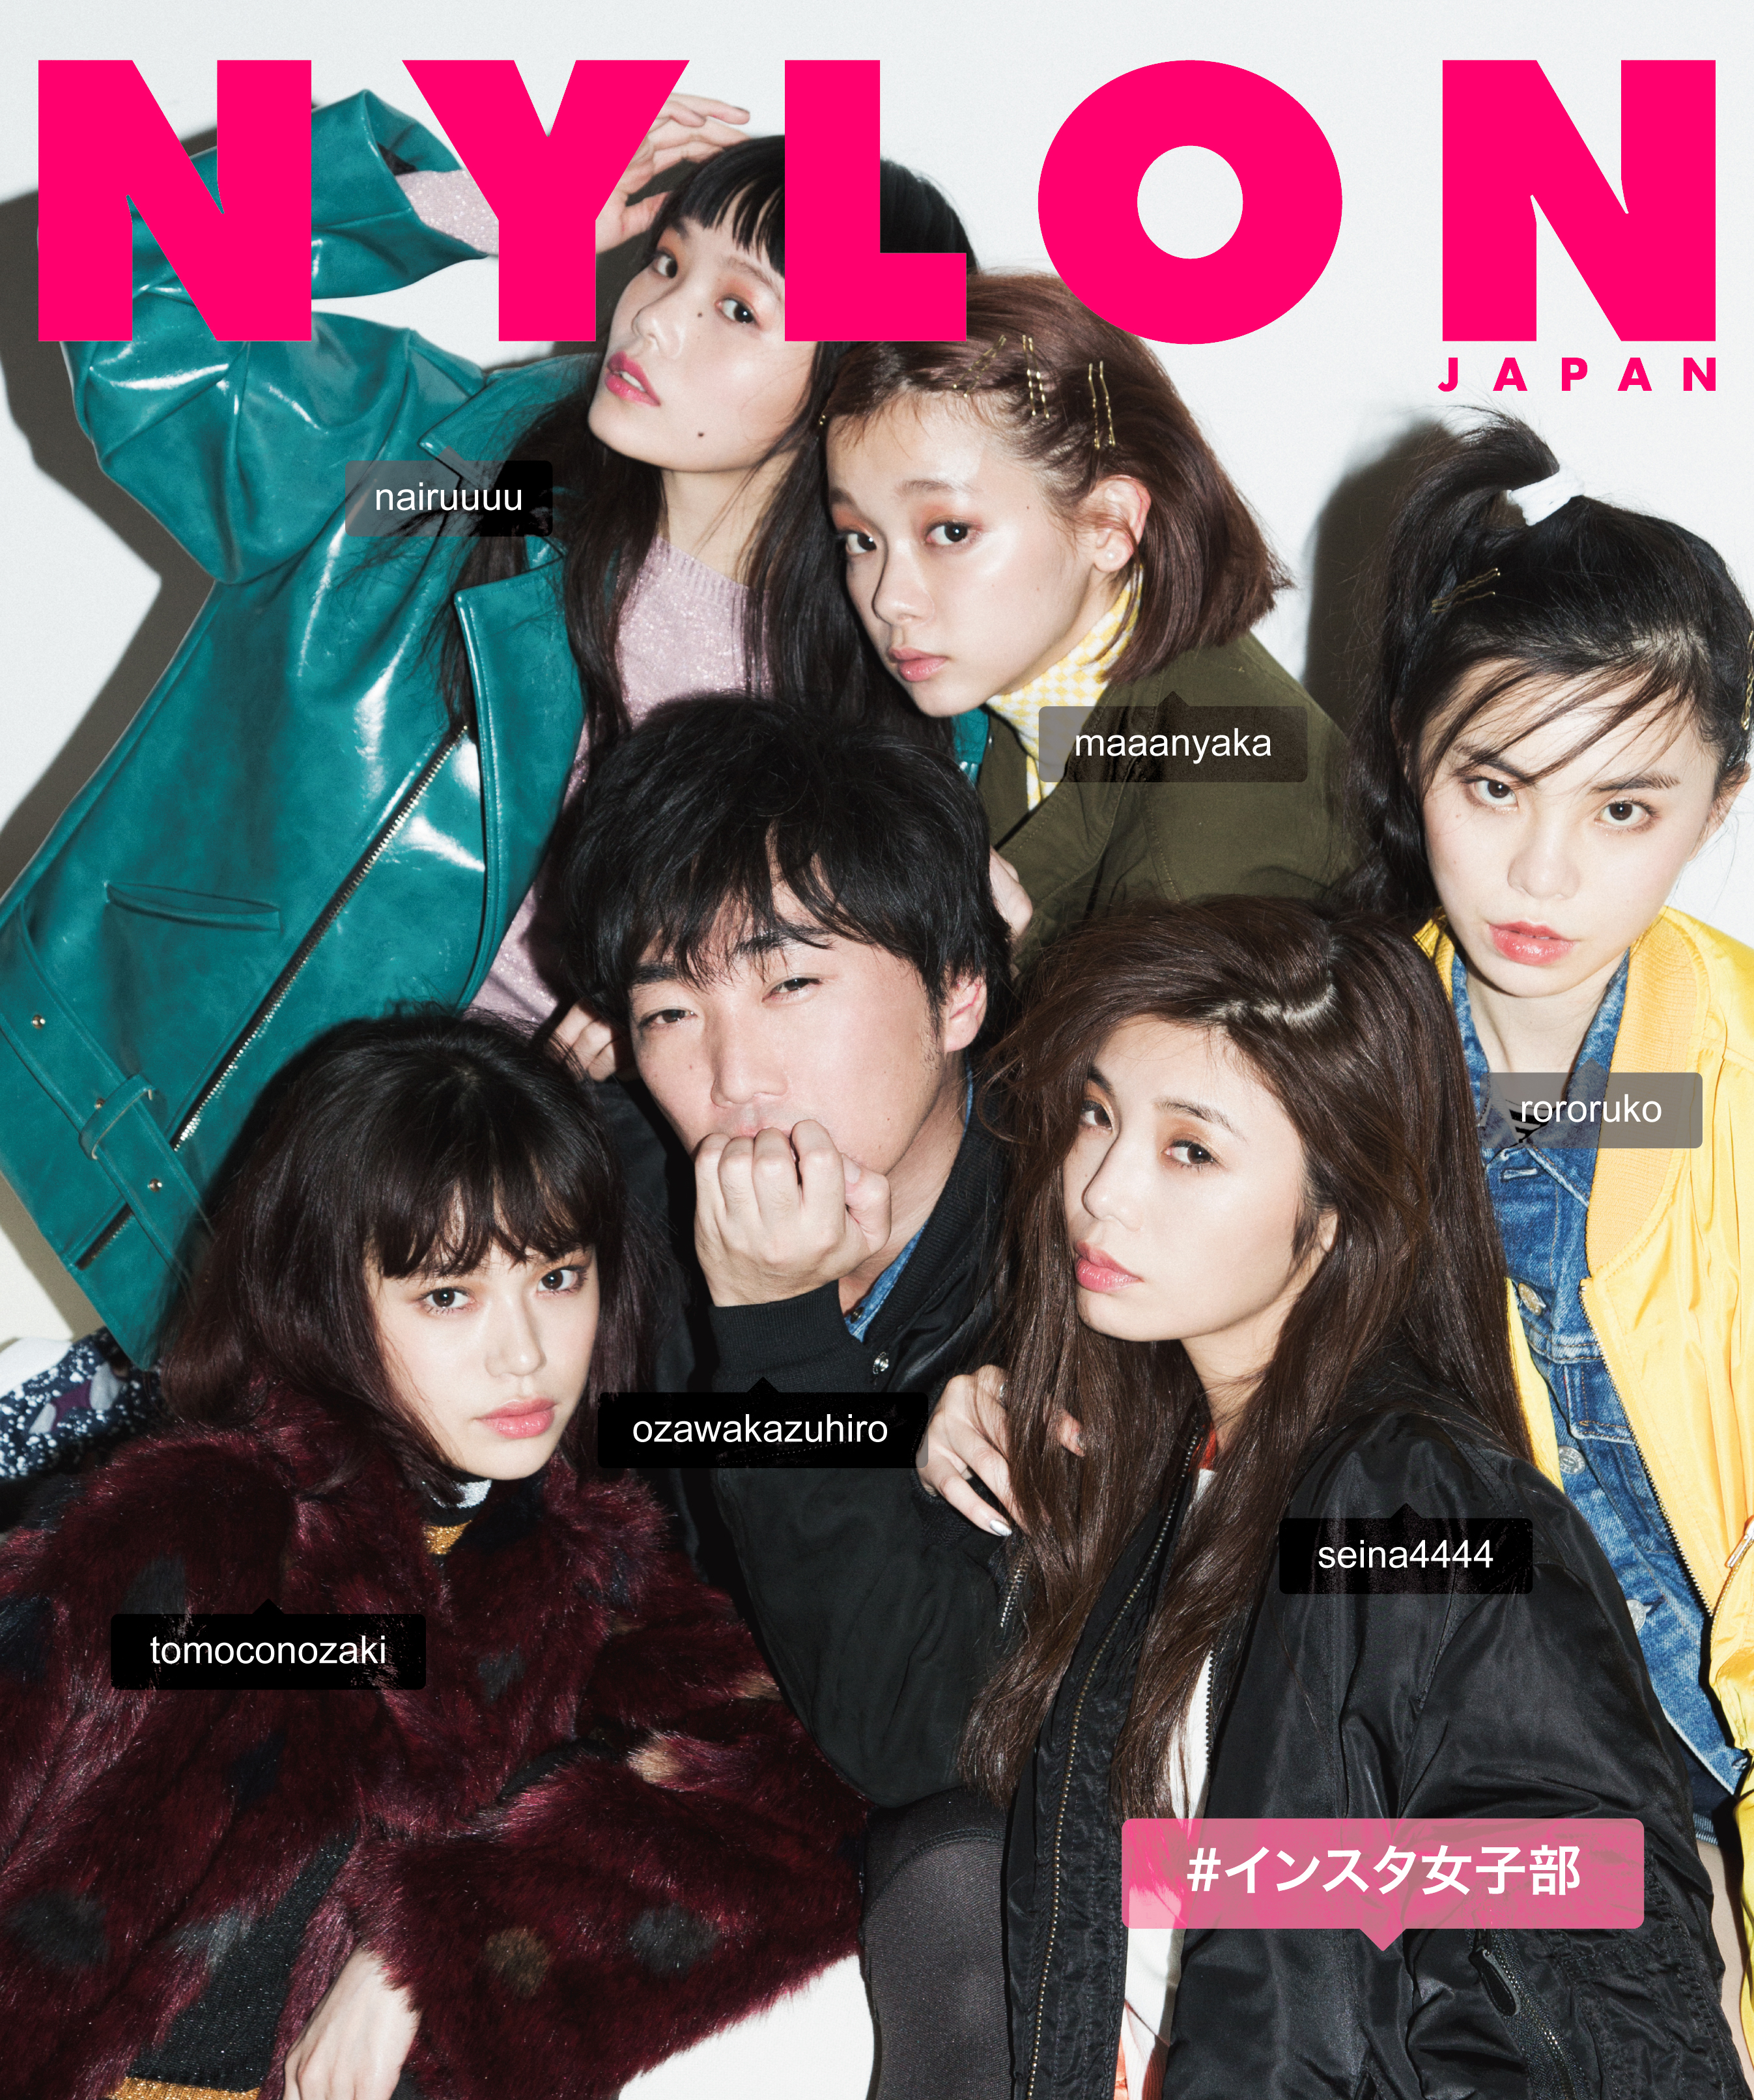 H001_COVER_A